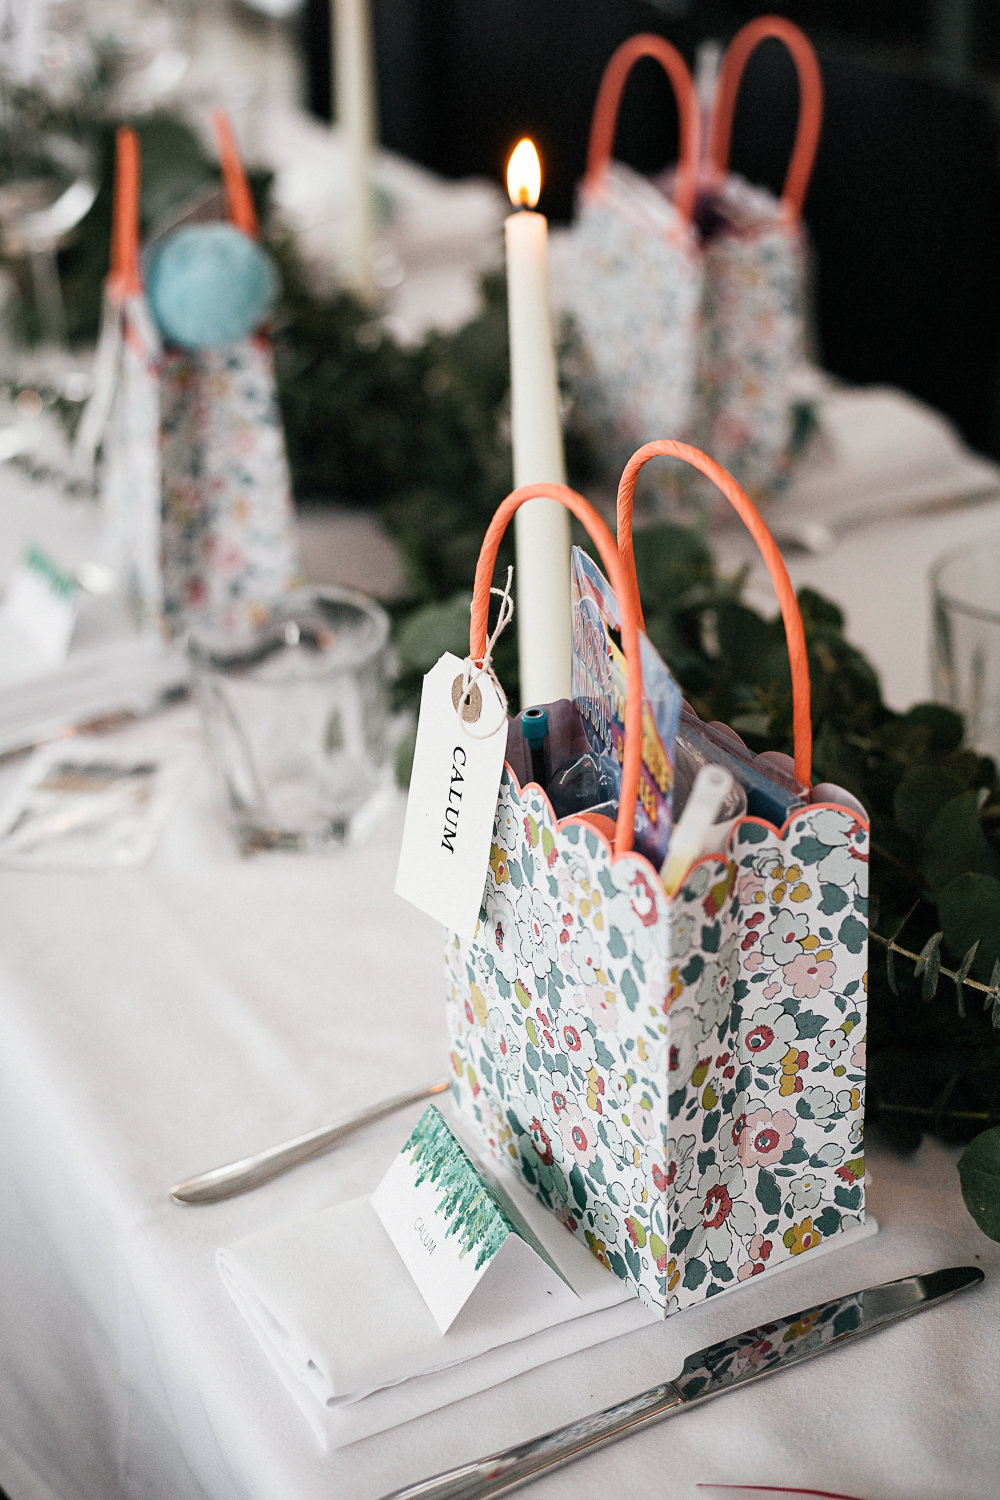 Favour Goodie Bags Orleans House Gallery Wedding My Beautiful Bride Photography